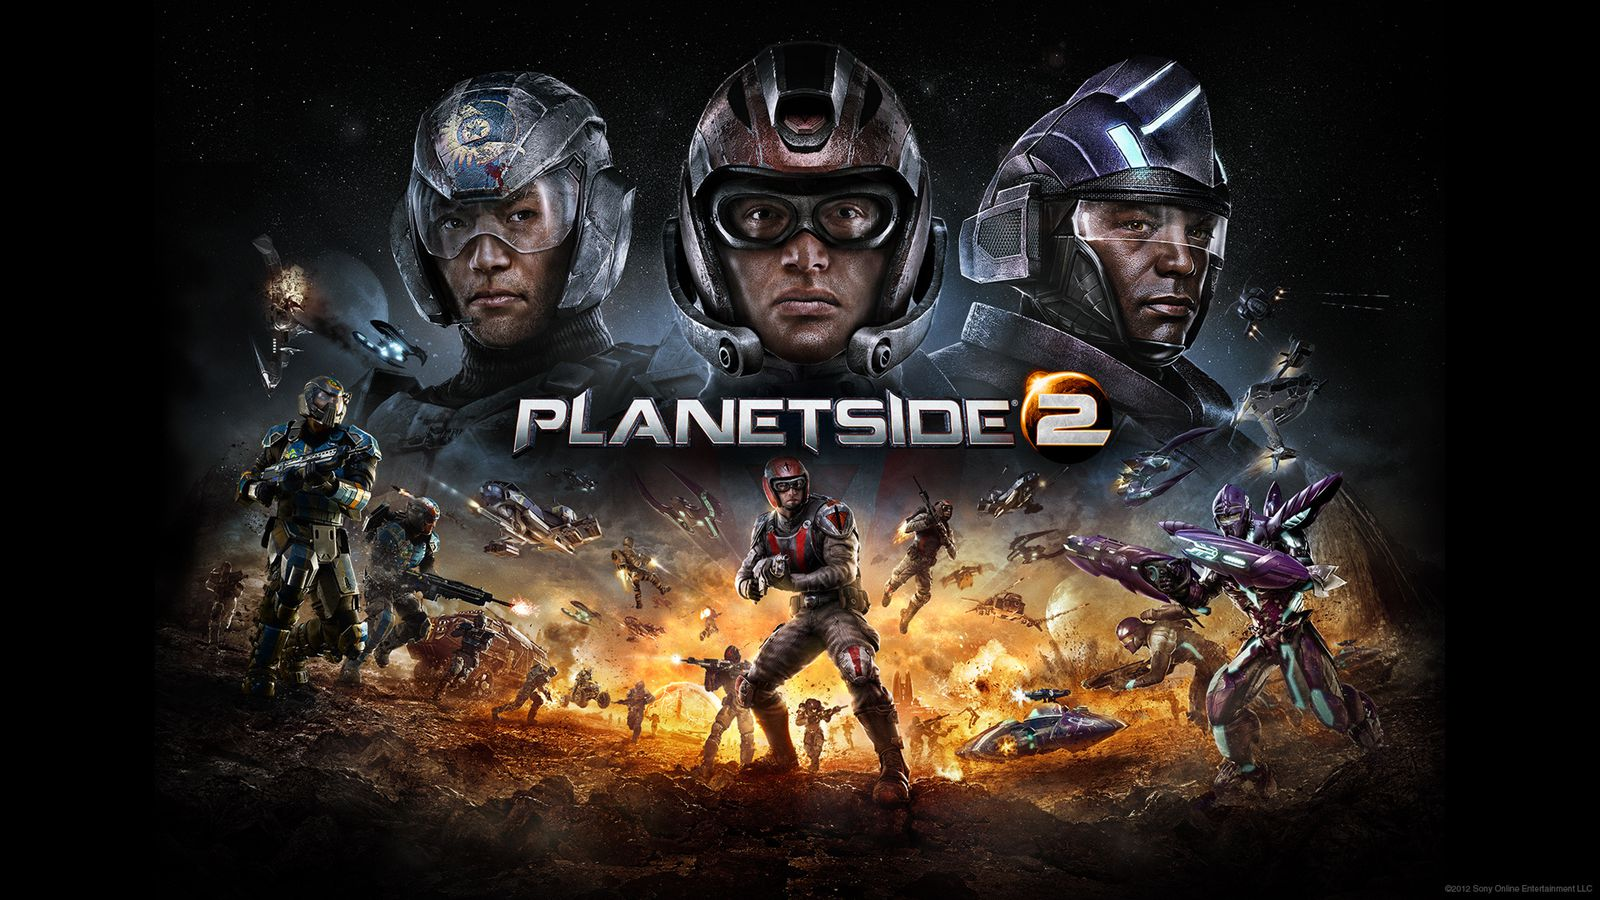 Planetside-2-wallpaper-03